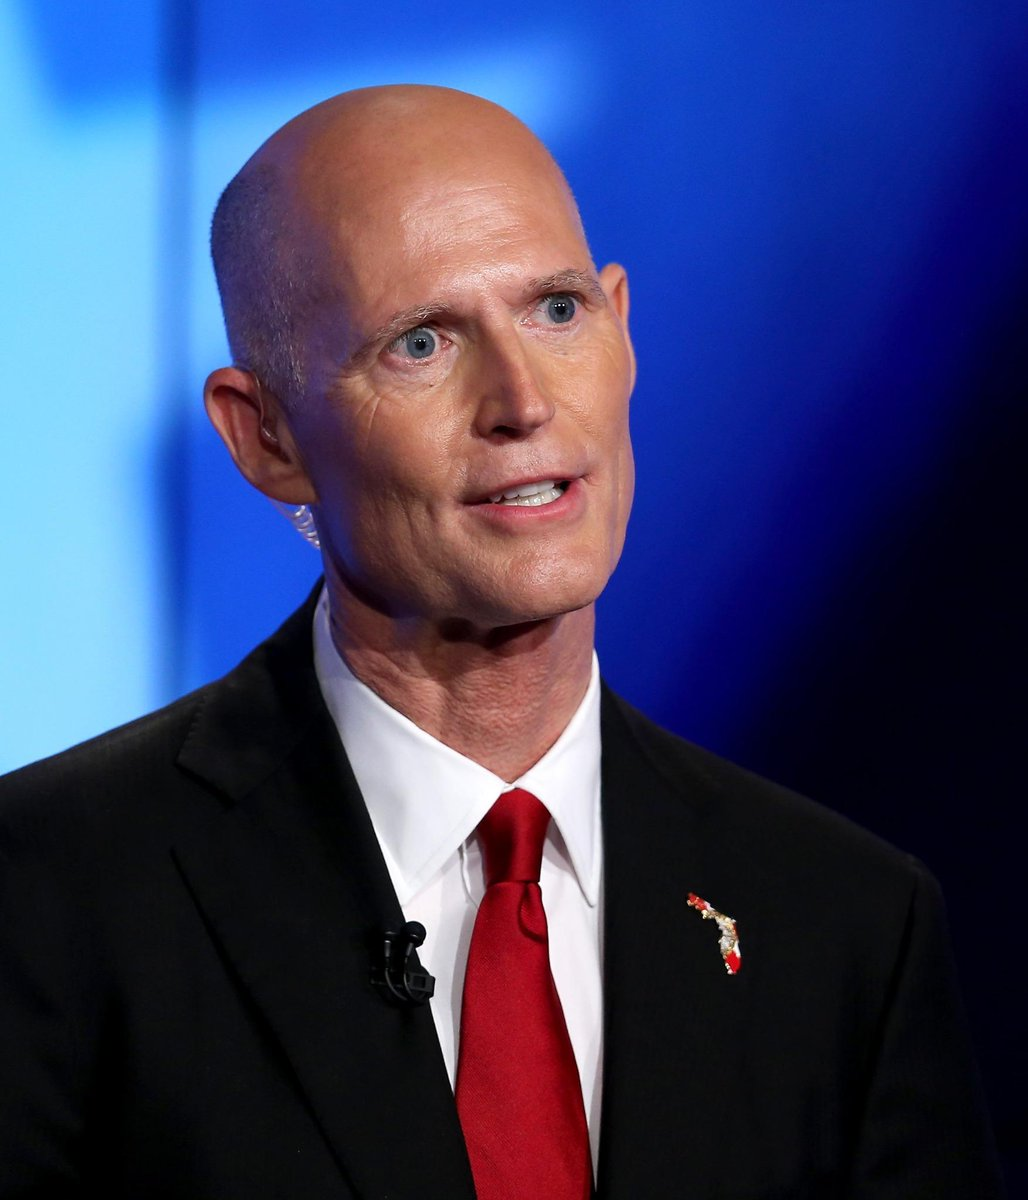 #BREAKING IT'S OFFICIAL: #RickScott has won the #Florida governor #Election2014 race http://t.co/b0RLJJs6OQ